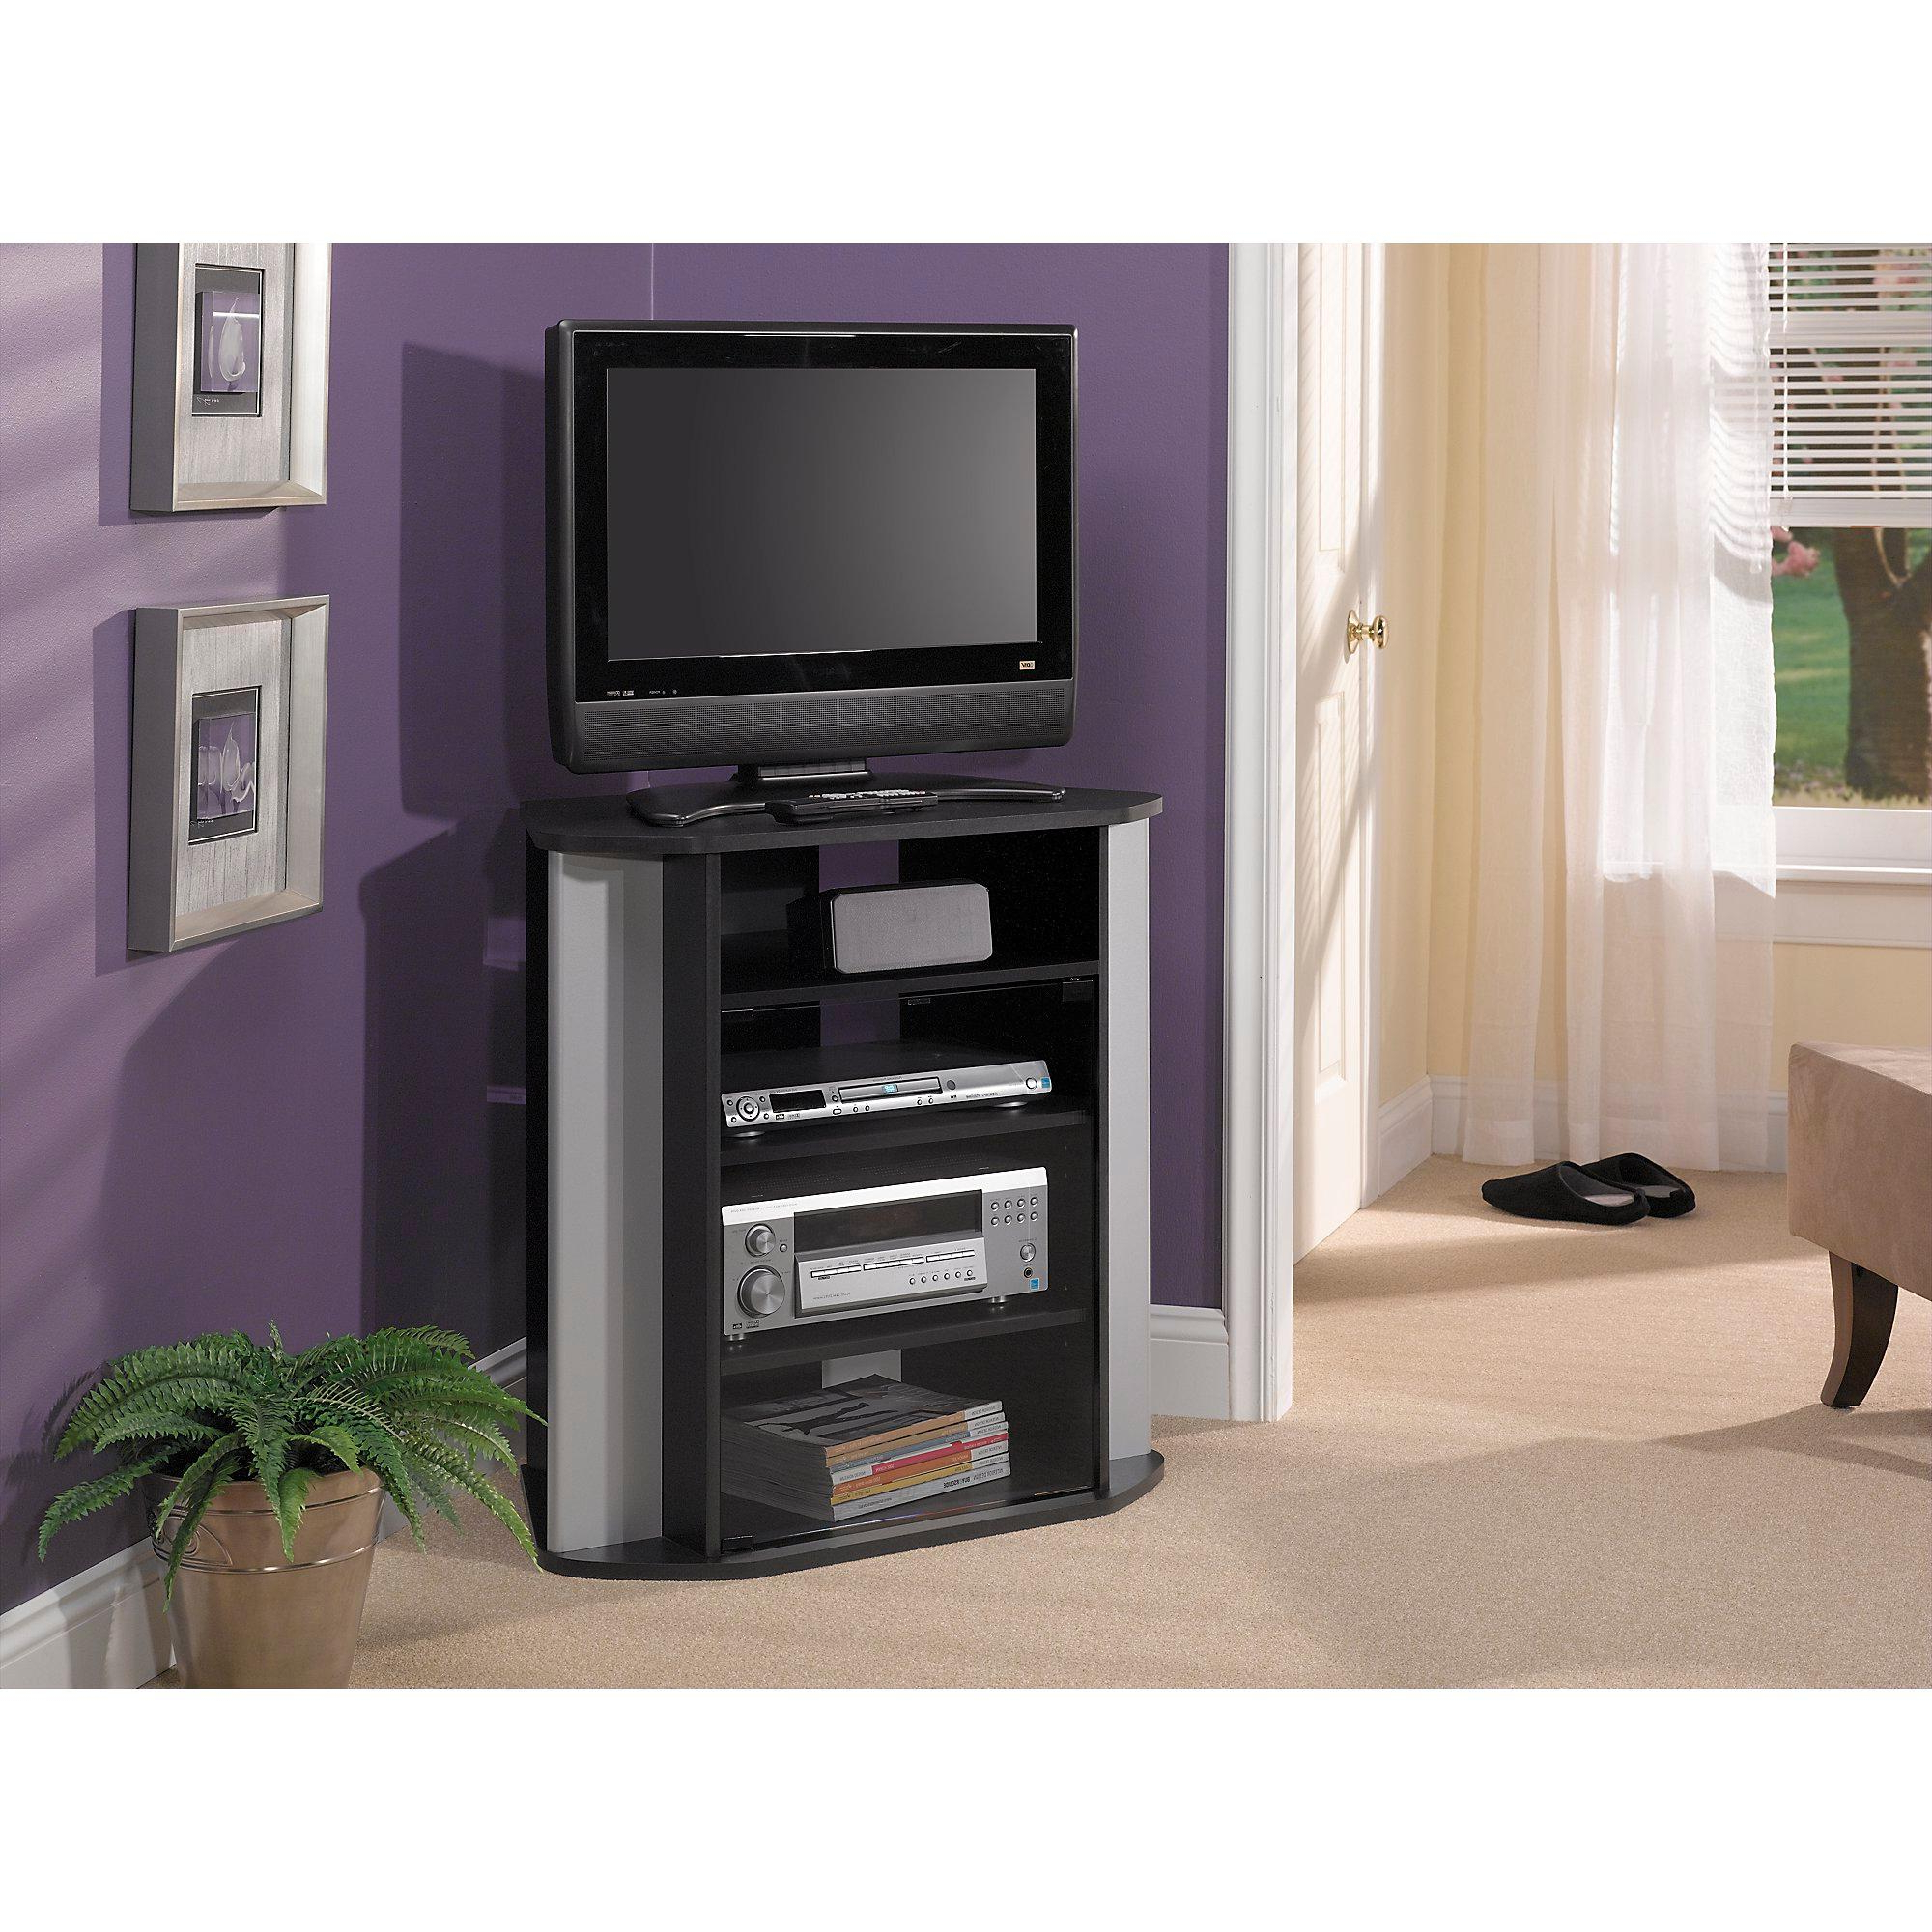 Fashionable Bush Furniture Visions Tall Corner Tv Stand In Black: Amazon (View 8 of 20)